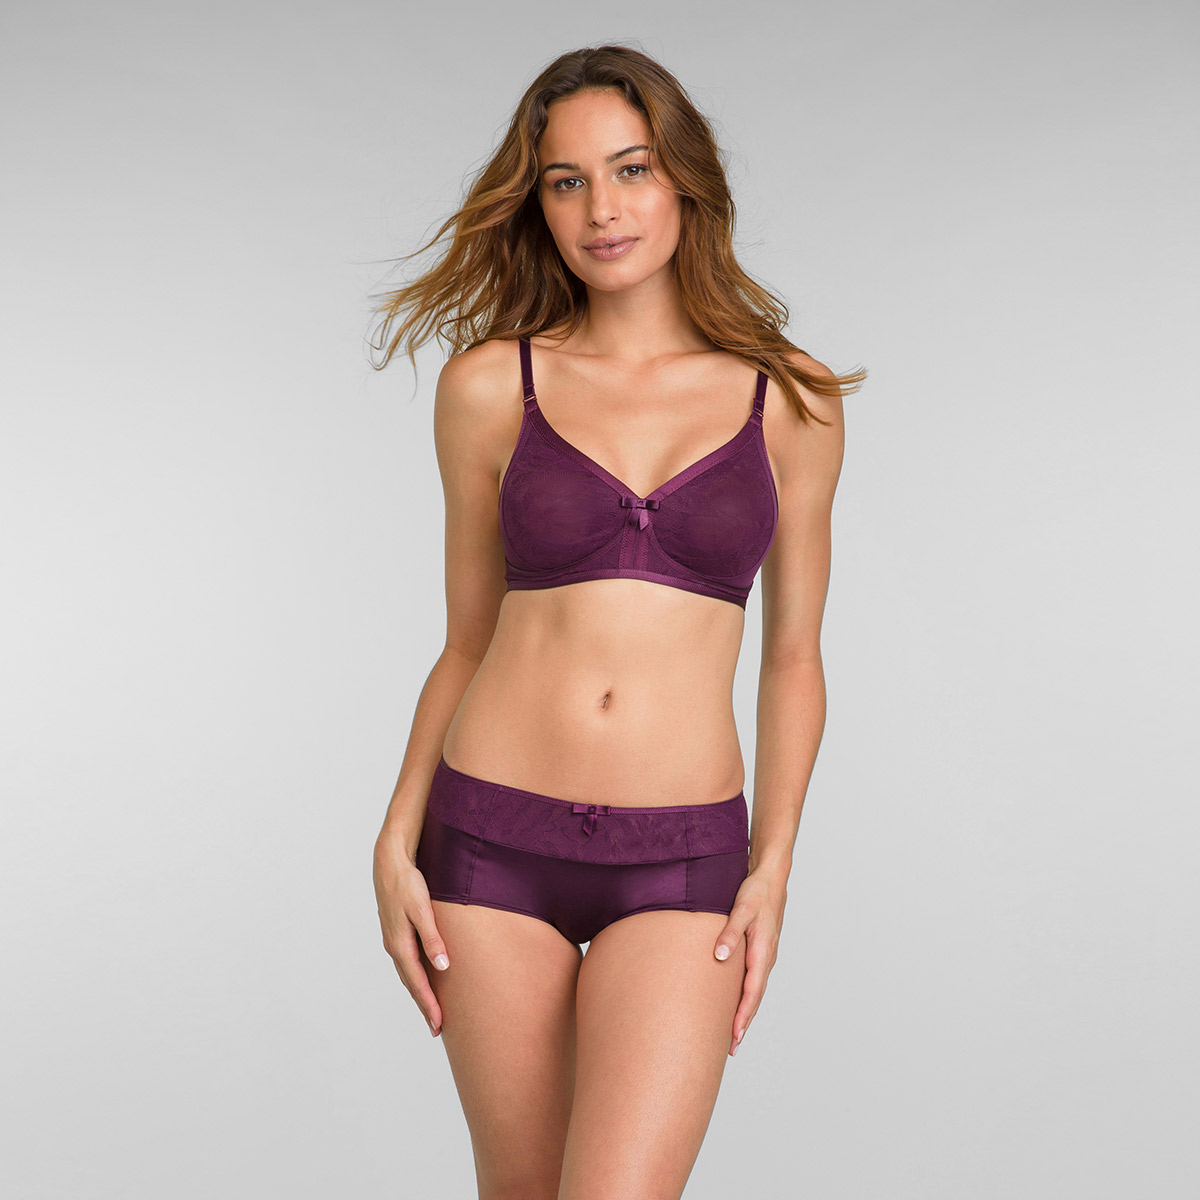 Soutien-gorge dentelle prune sans armatures Ideal Beauty Lace, , PLAYTEX